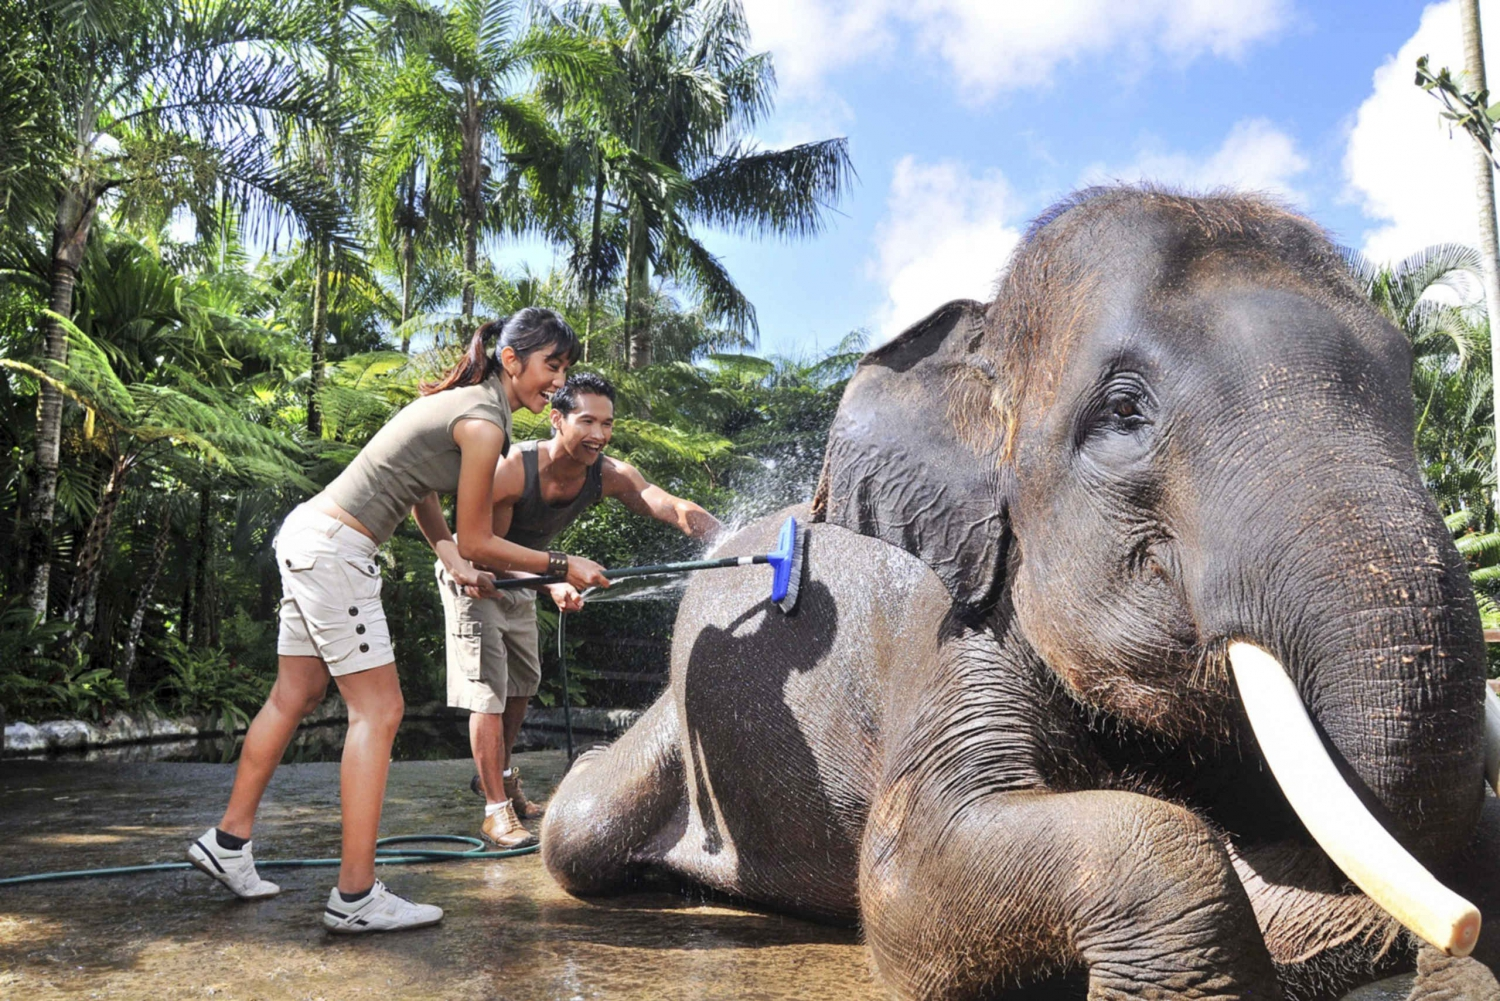 Breakfast and Bathing with Elephants